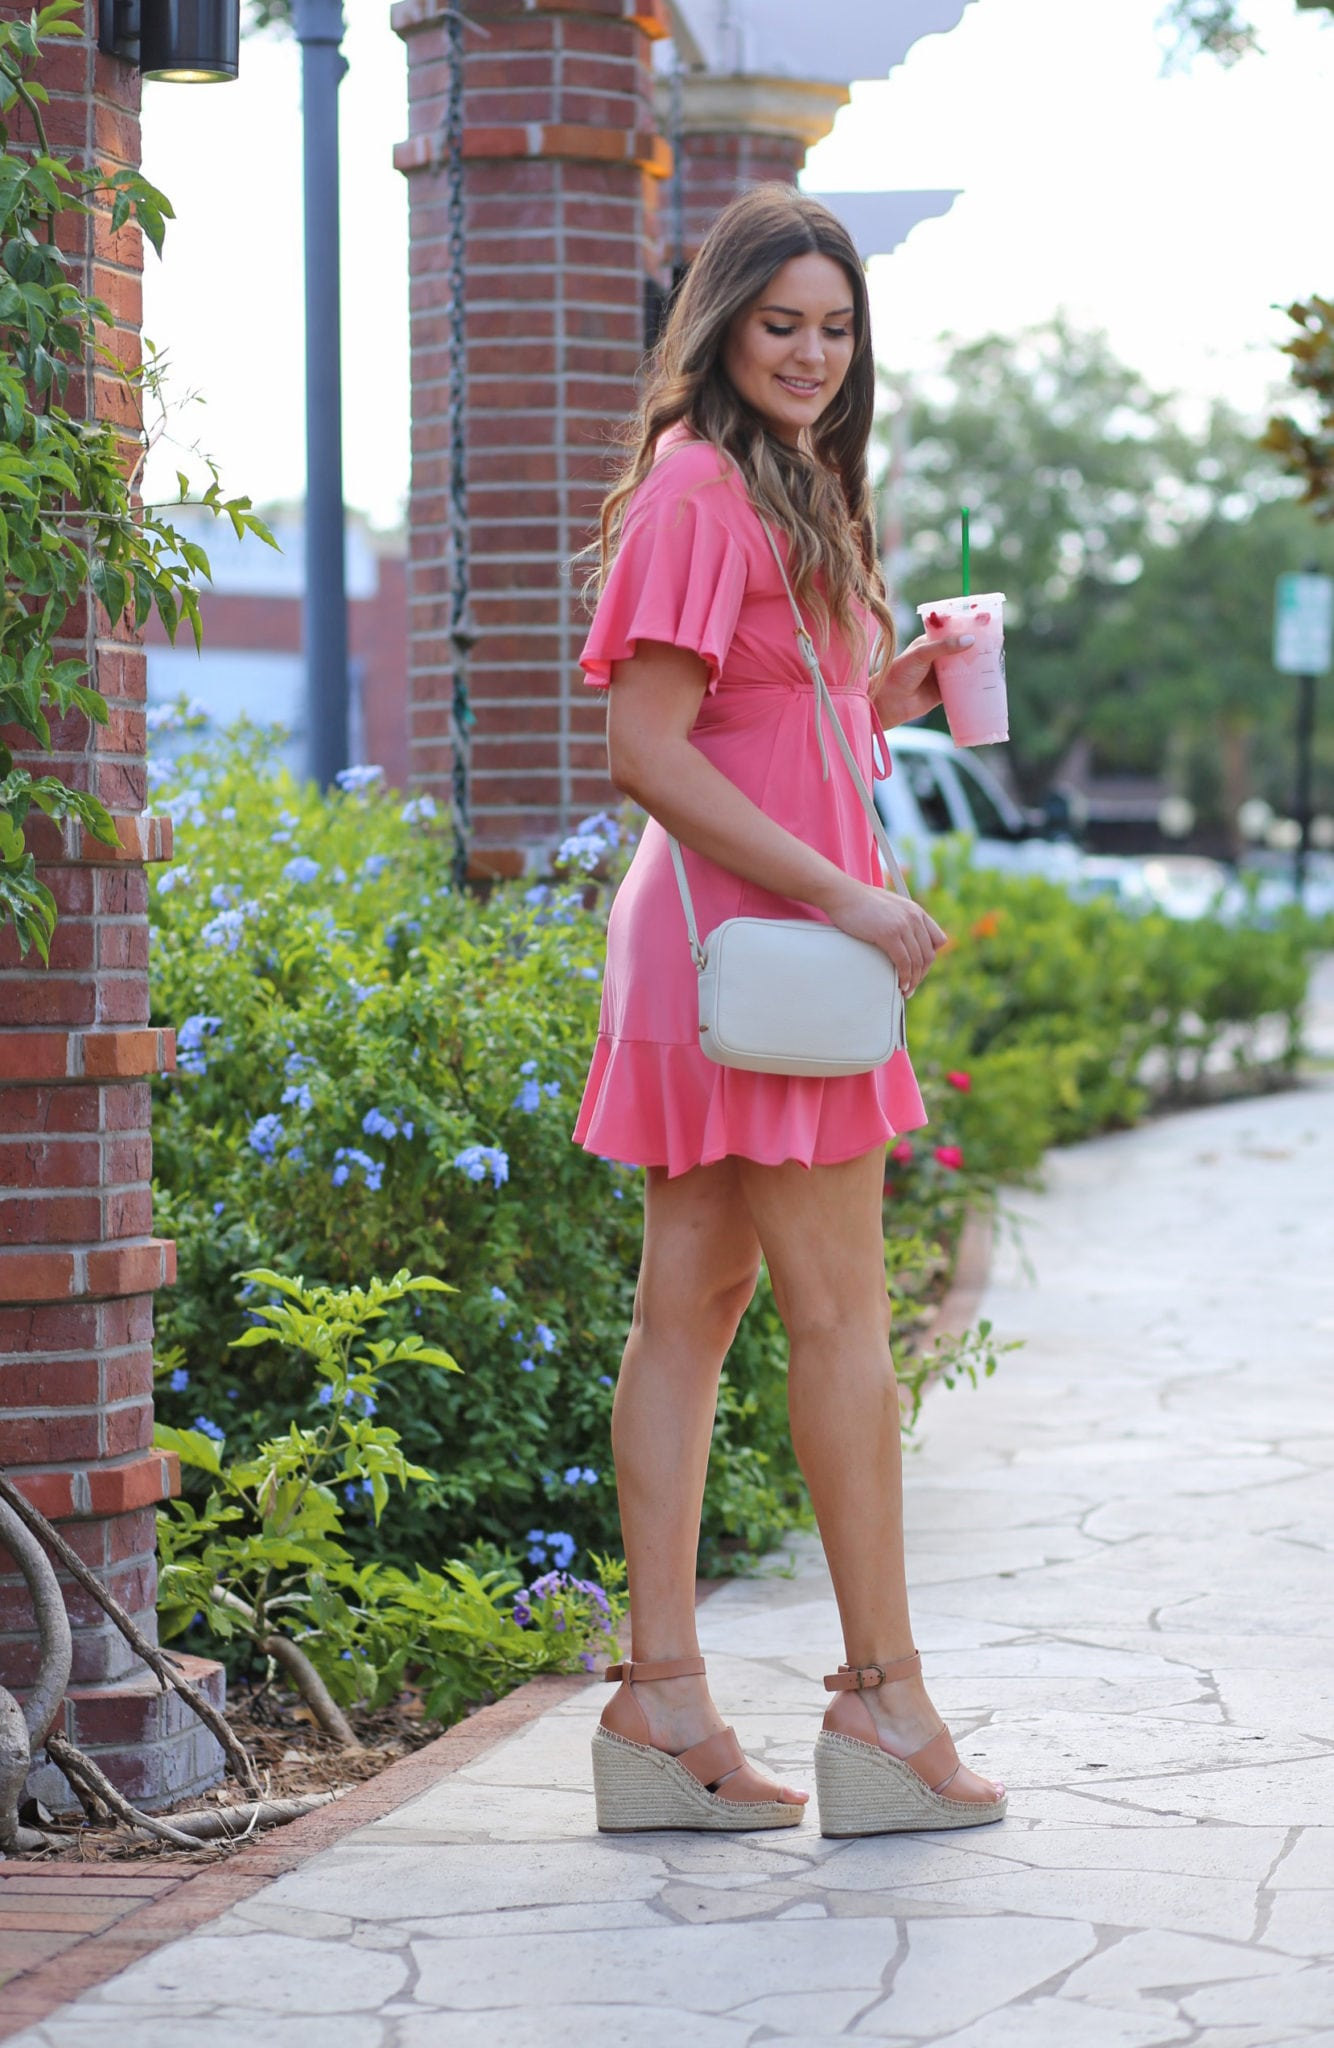 Mash elle baby shower outfit pink dress